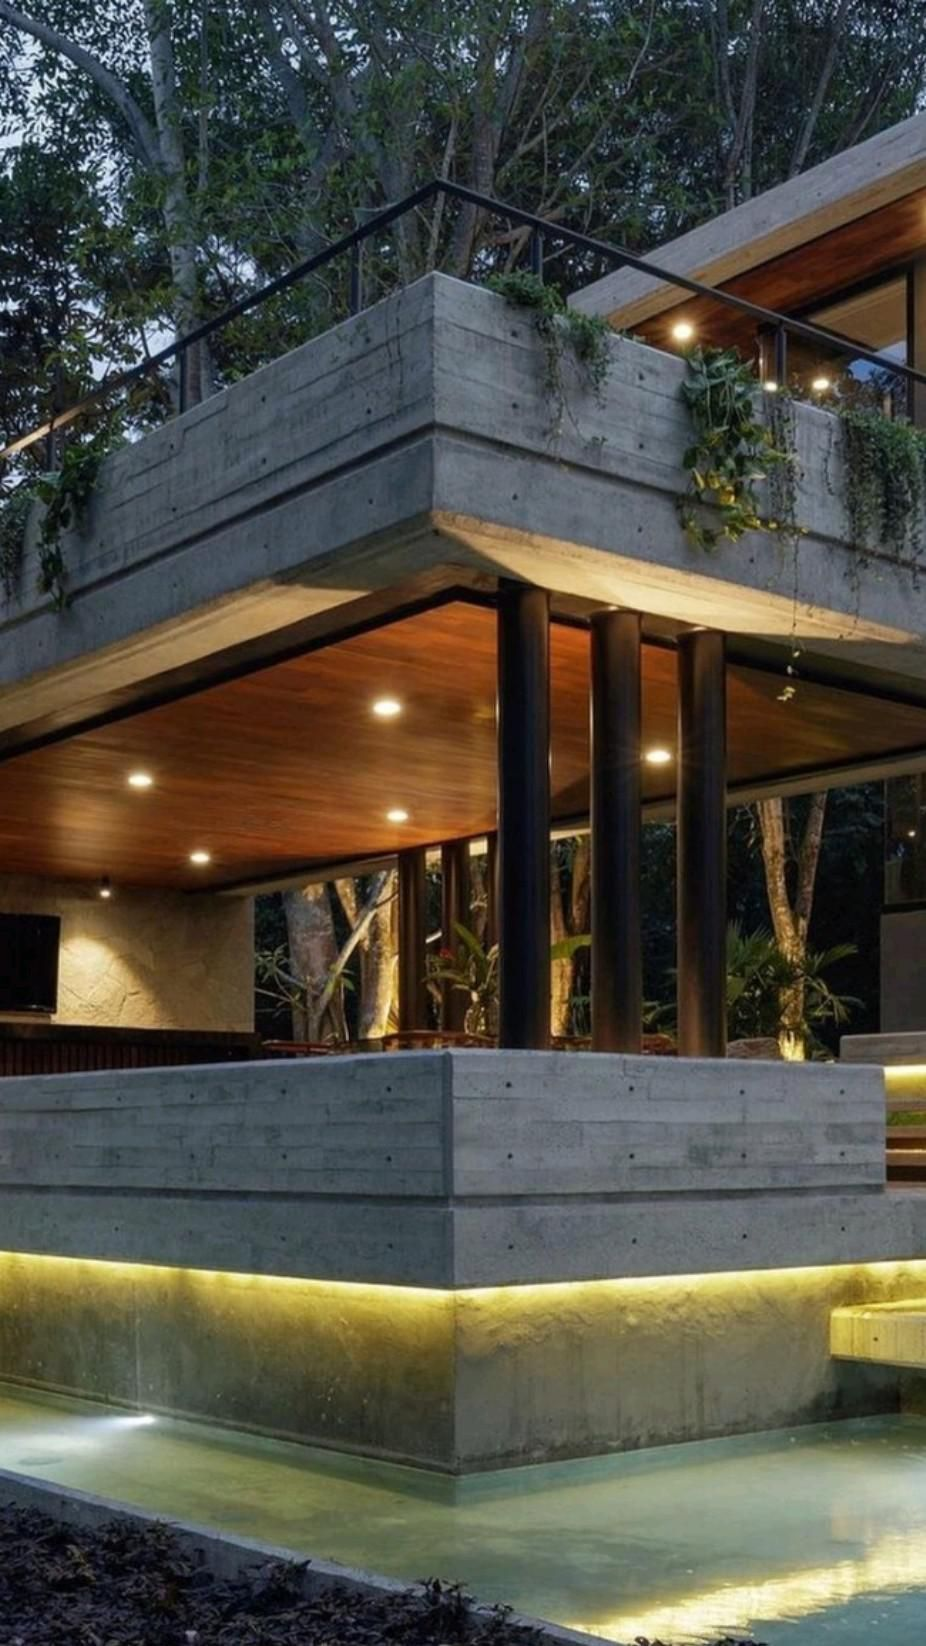 Mao House in Colima, Mexico designed by Di Frenna Arquitectos